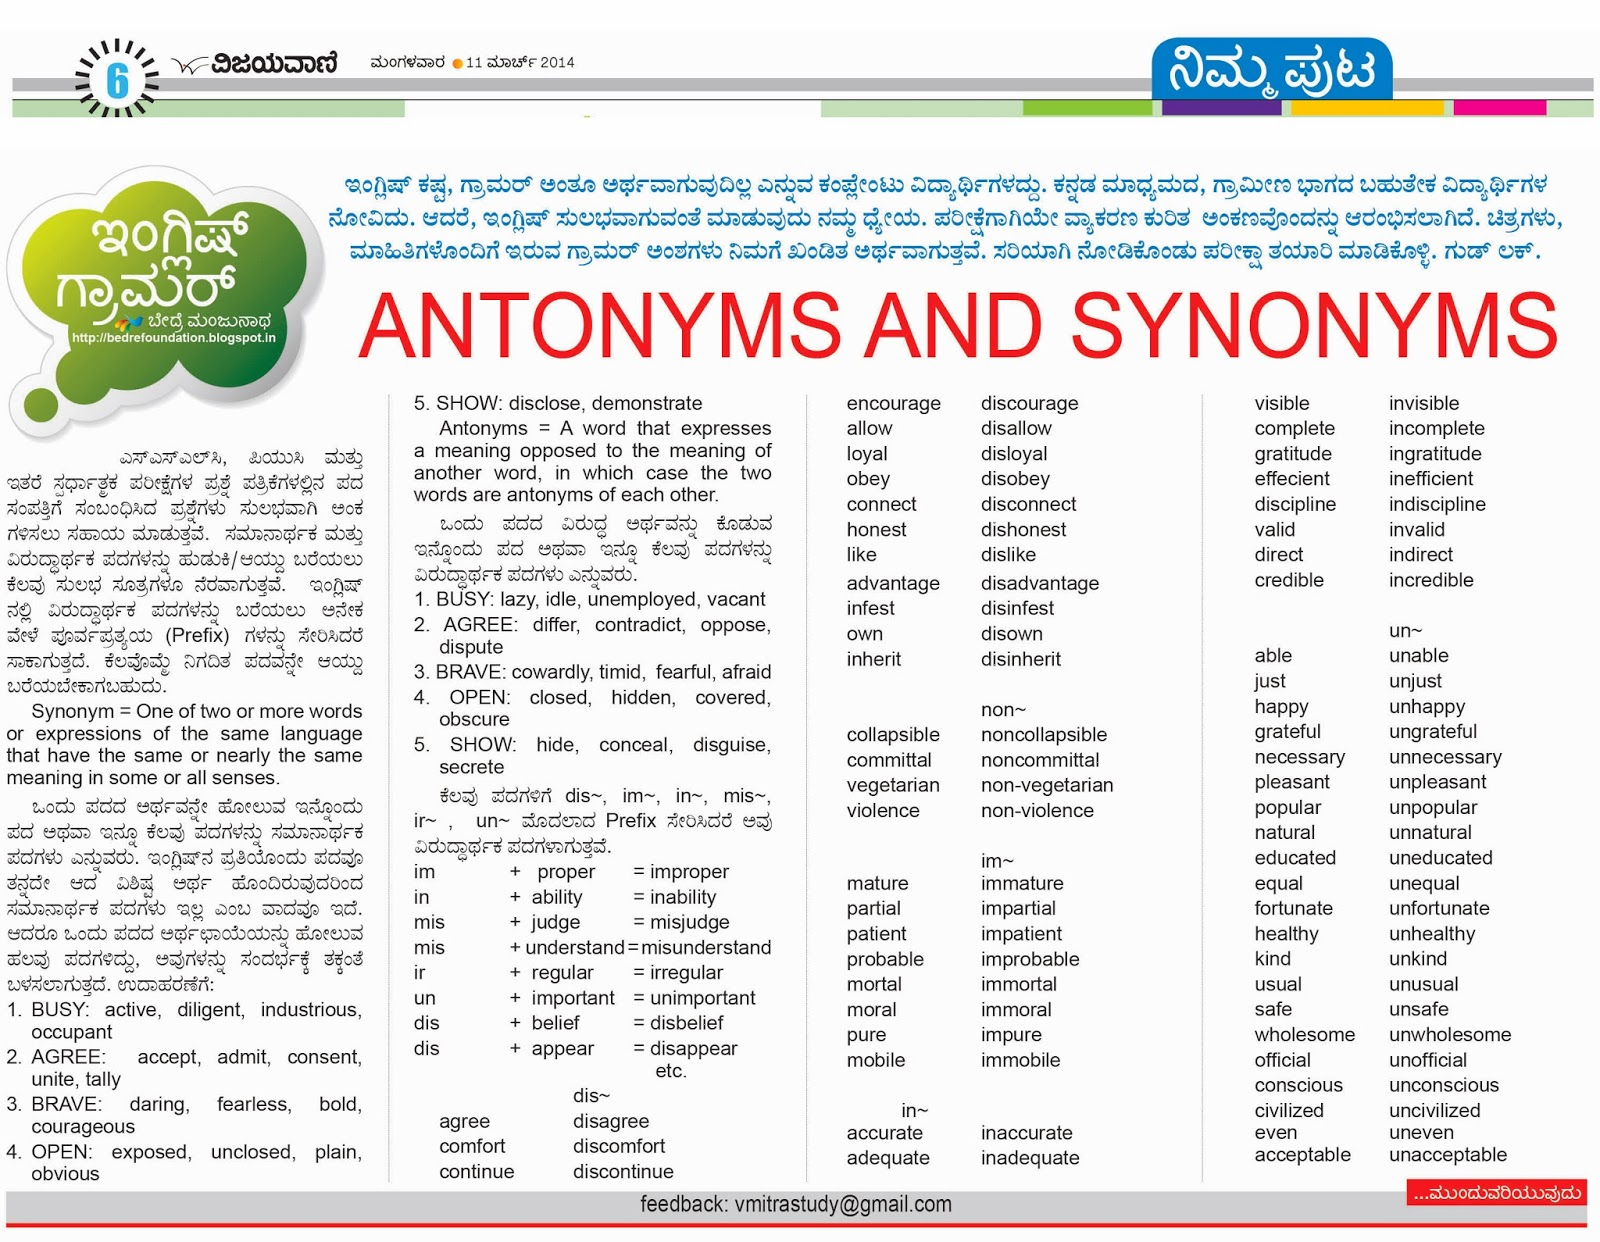 Worksheets Antonyms And Synonyms antonyms and synonyms part 1 vijayavani synonyms